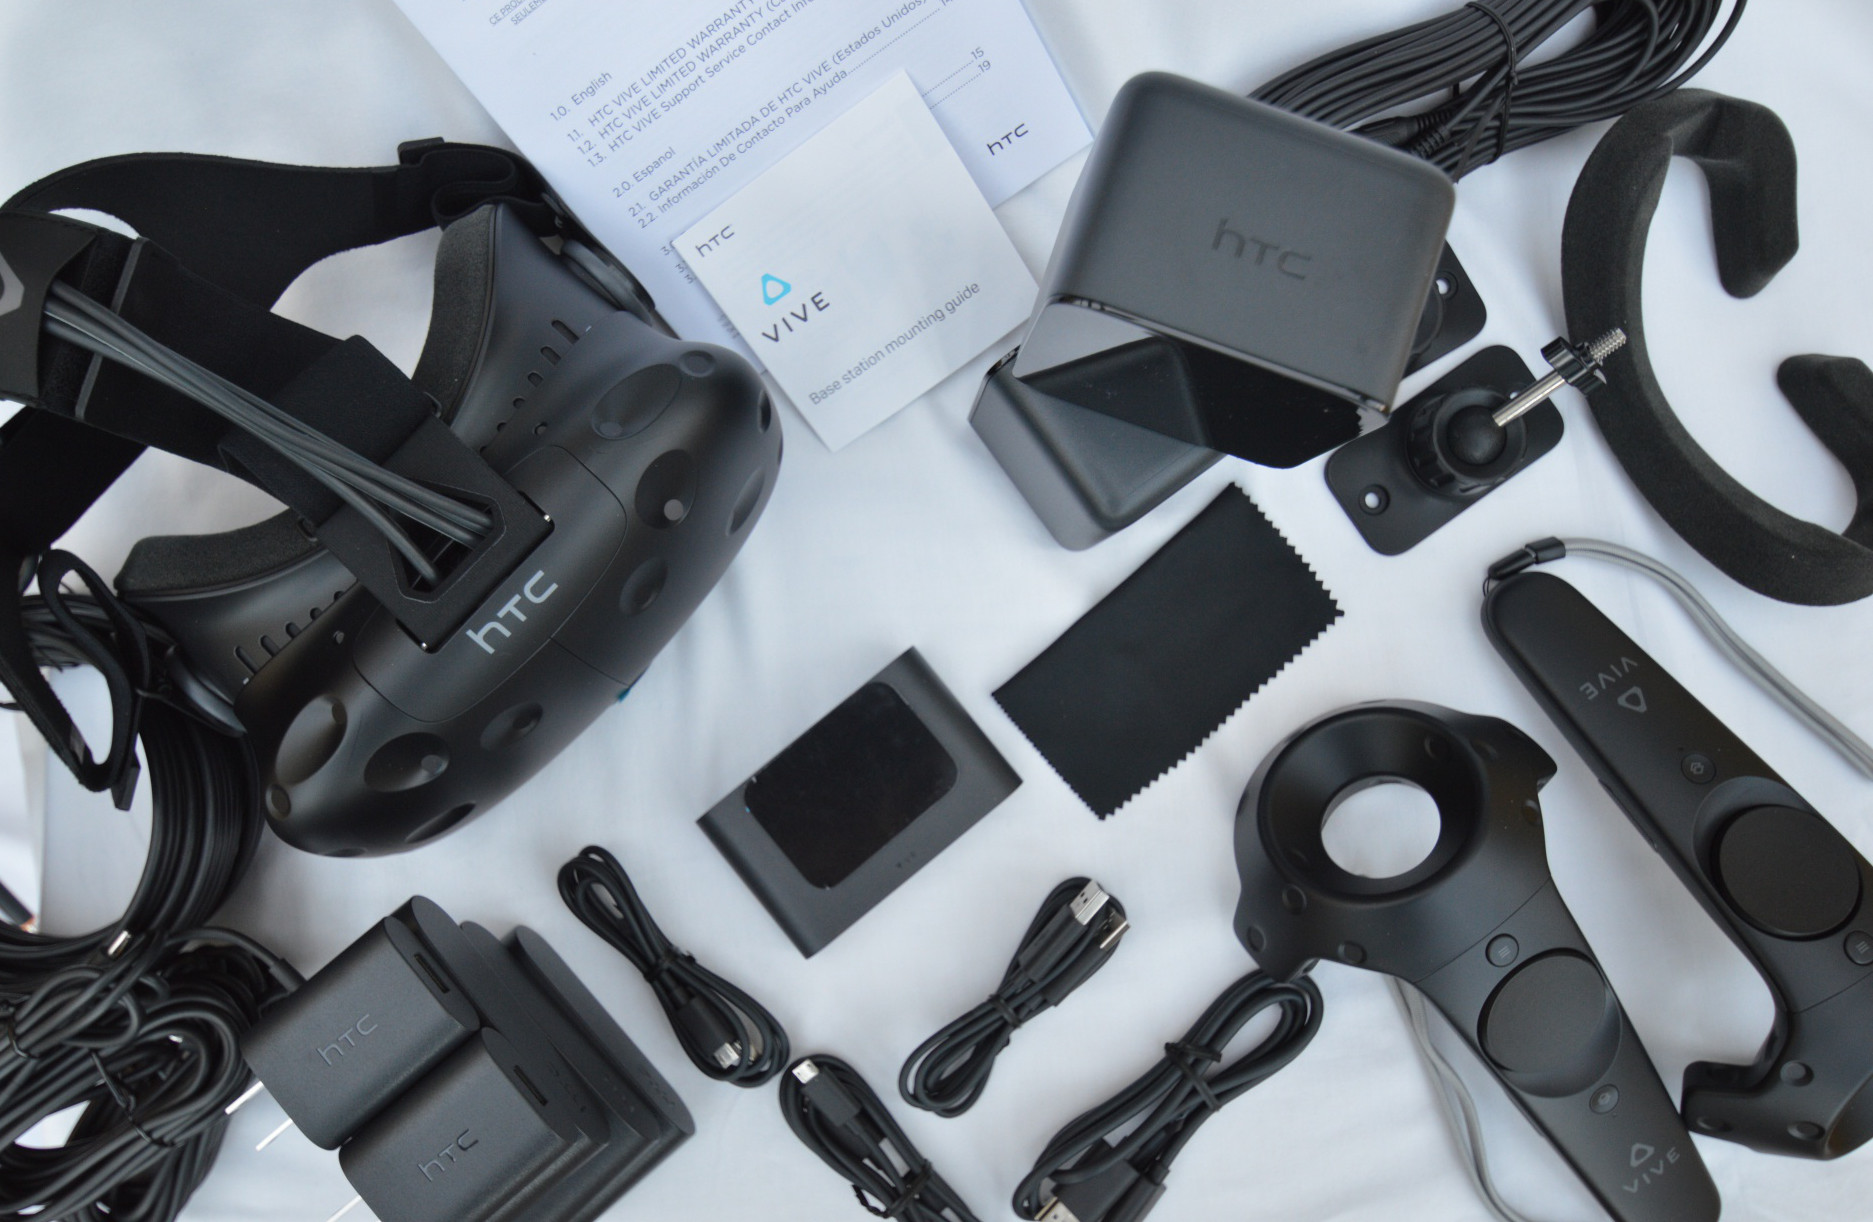 Vive-consumer-unboxing (68)